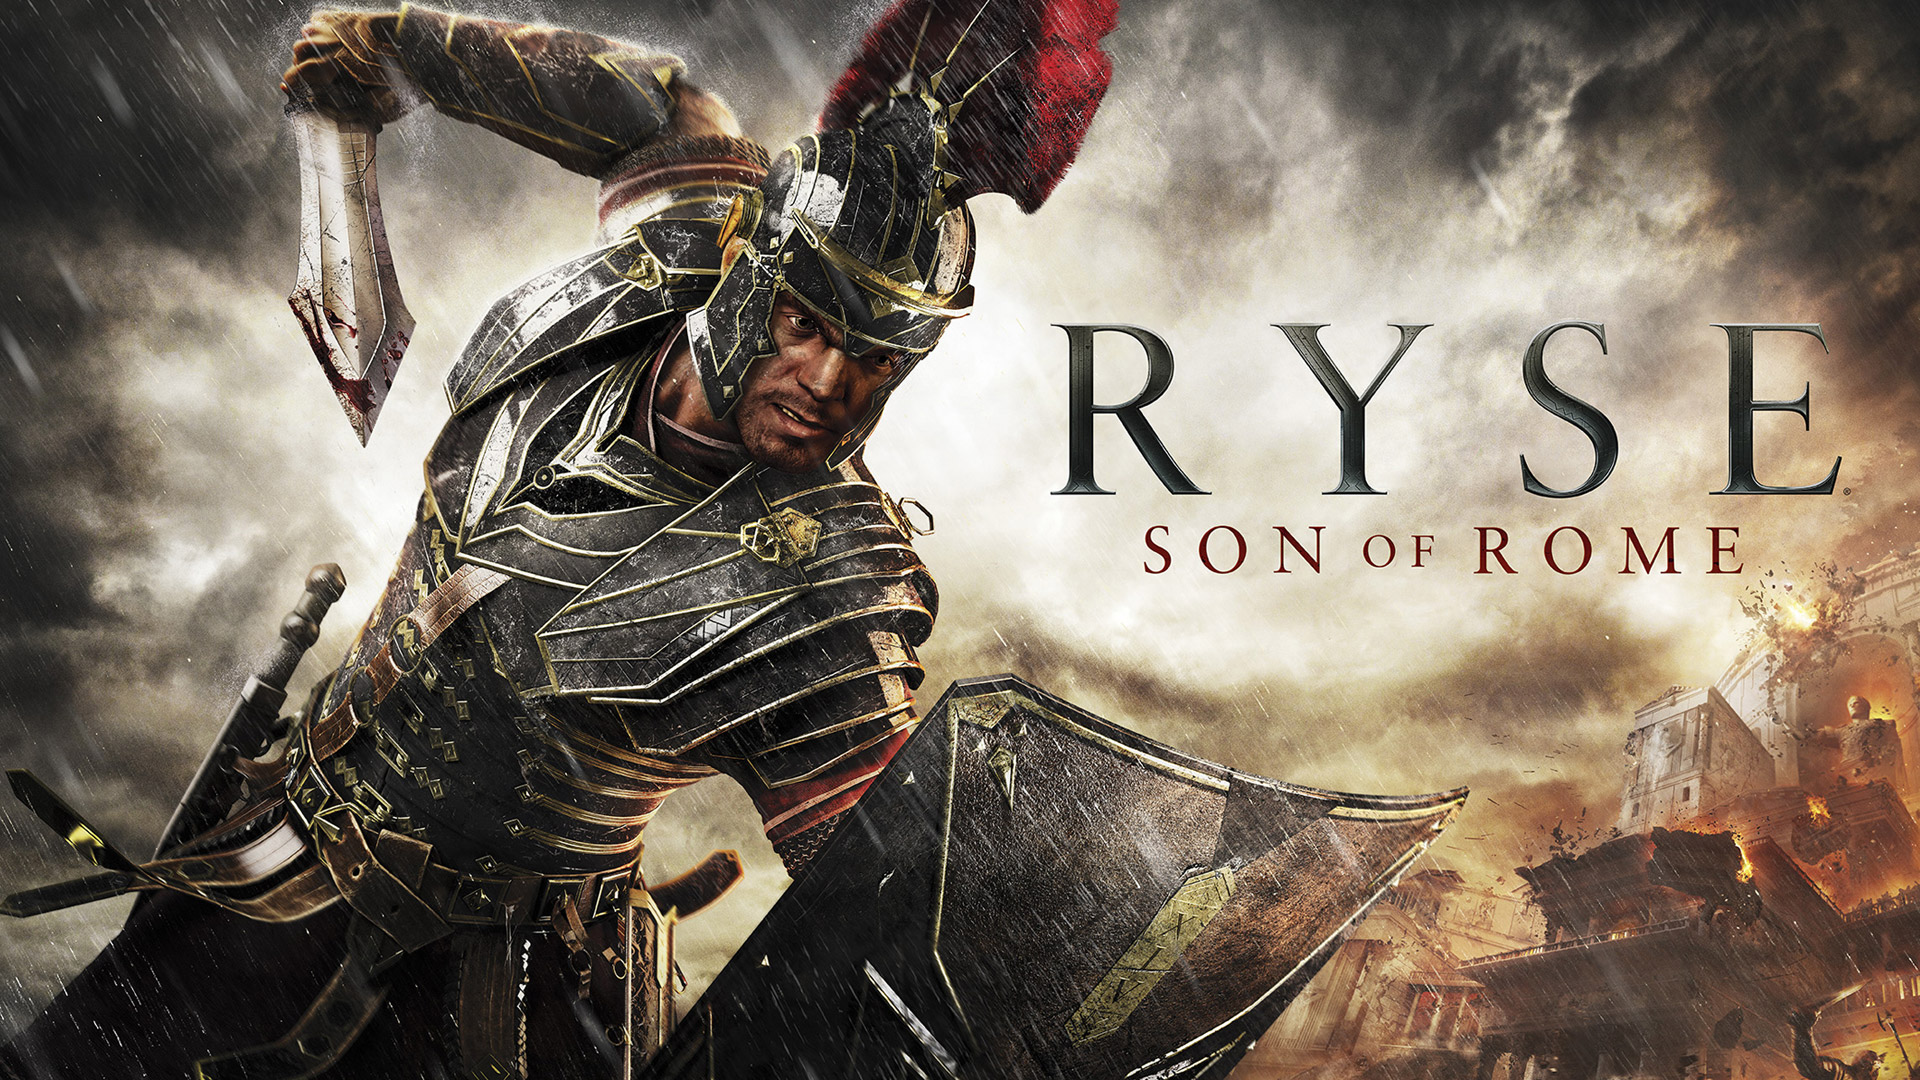 Ryse: Son of Rome Wallpaper in 1920x1080